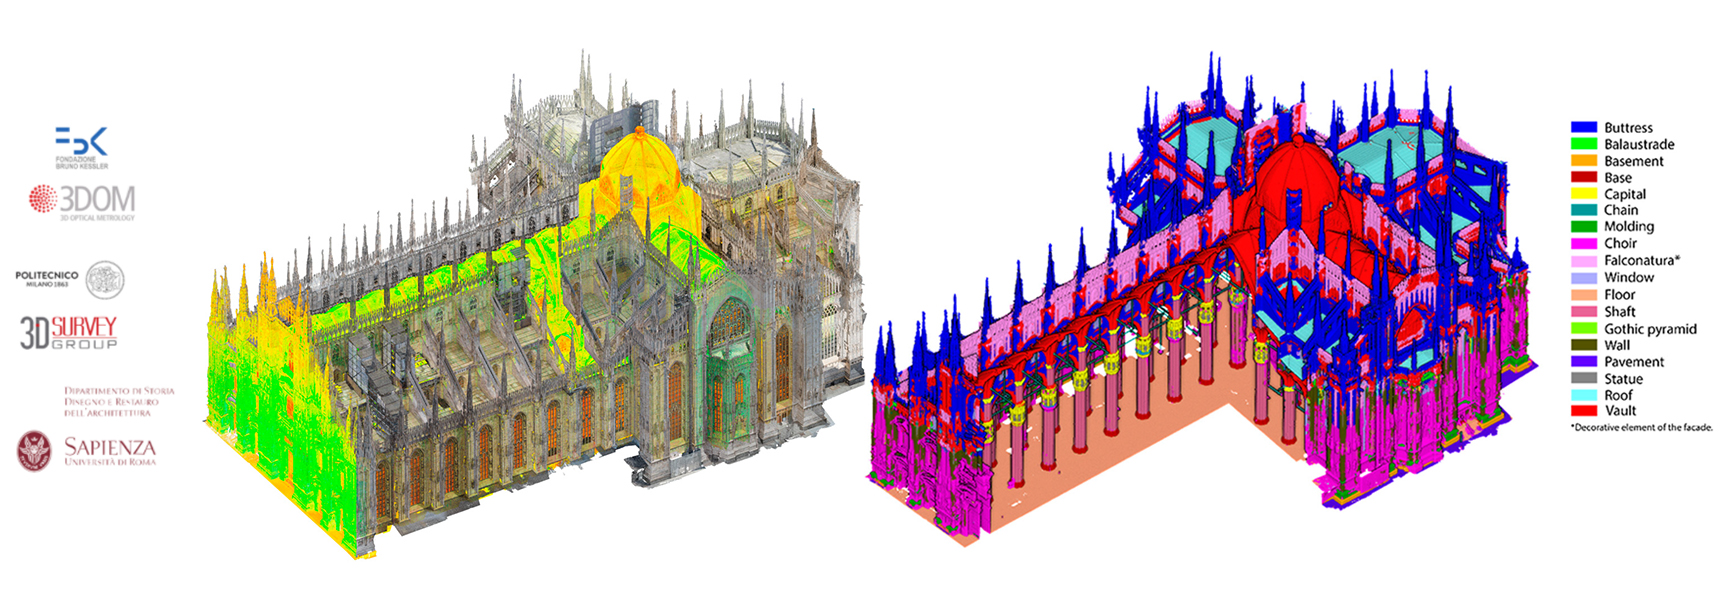 [Article] A Machine Learning approach for 3D point cloud classification